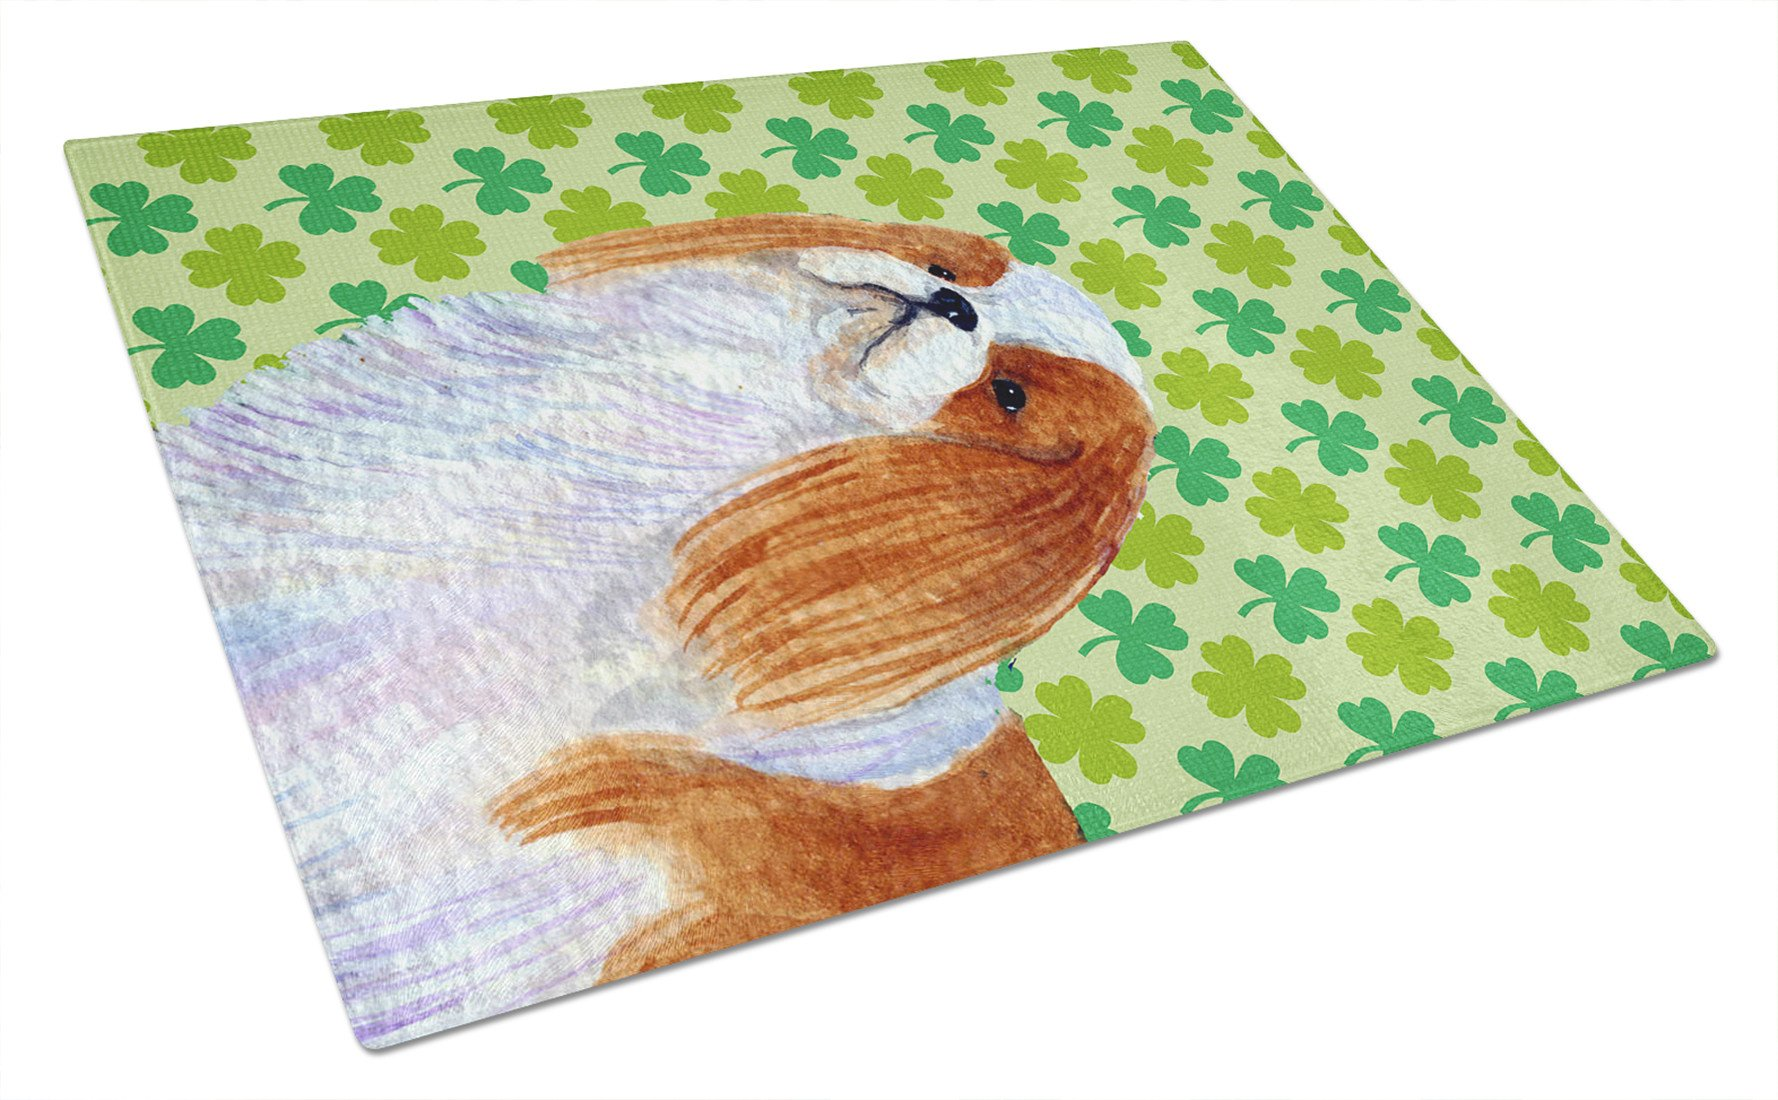 English Toy Spaniel St. Patrick's Day Shamrock  Glass Cutting Board Large by Caroline's Treasures